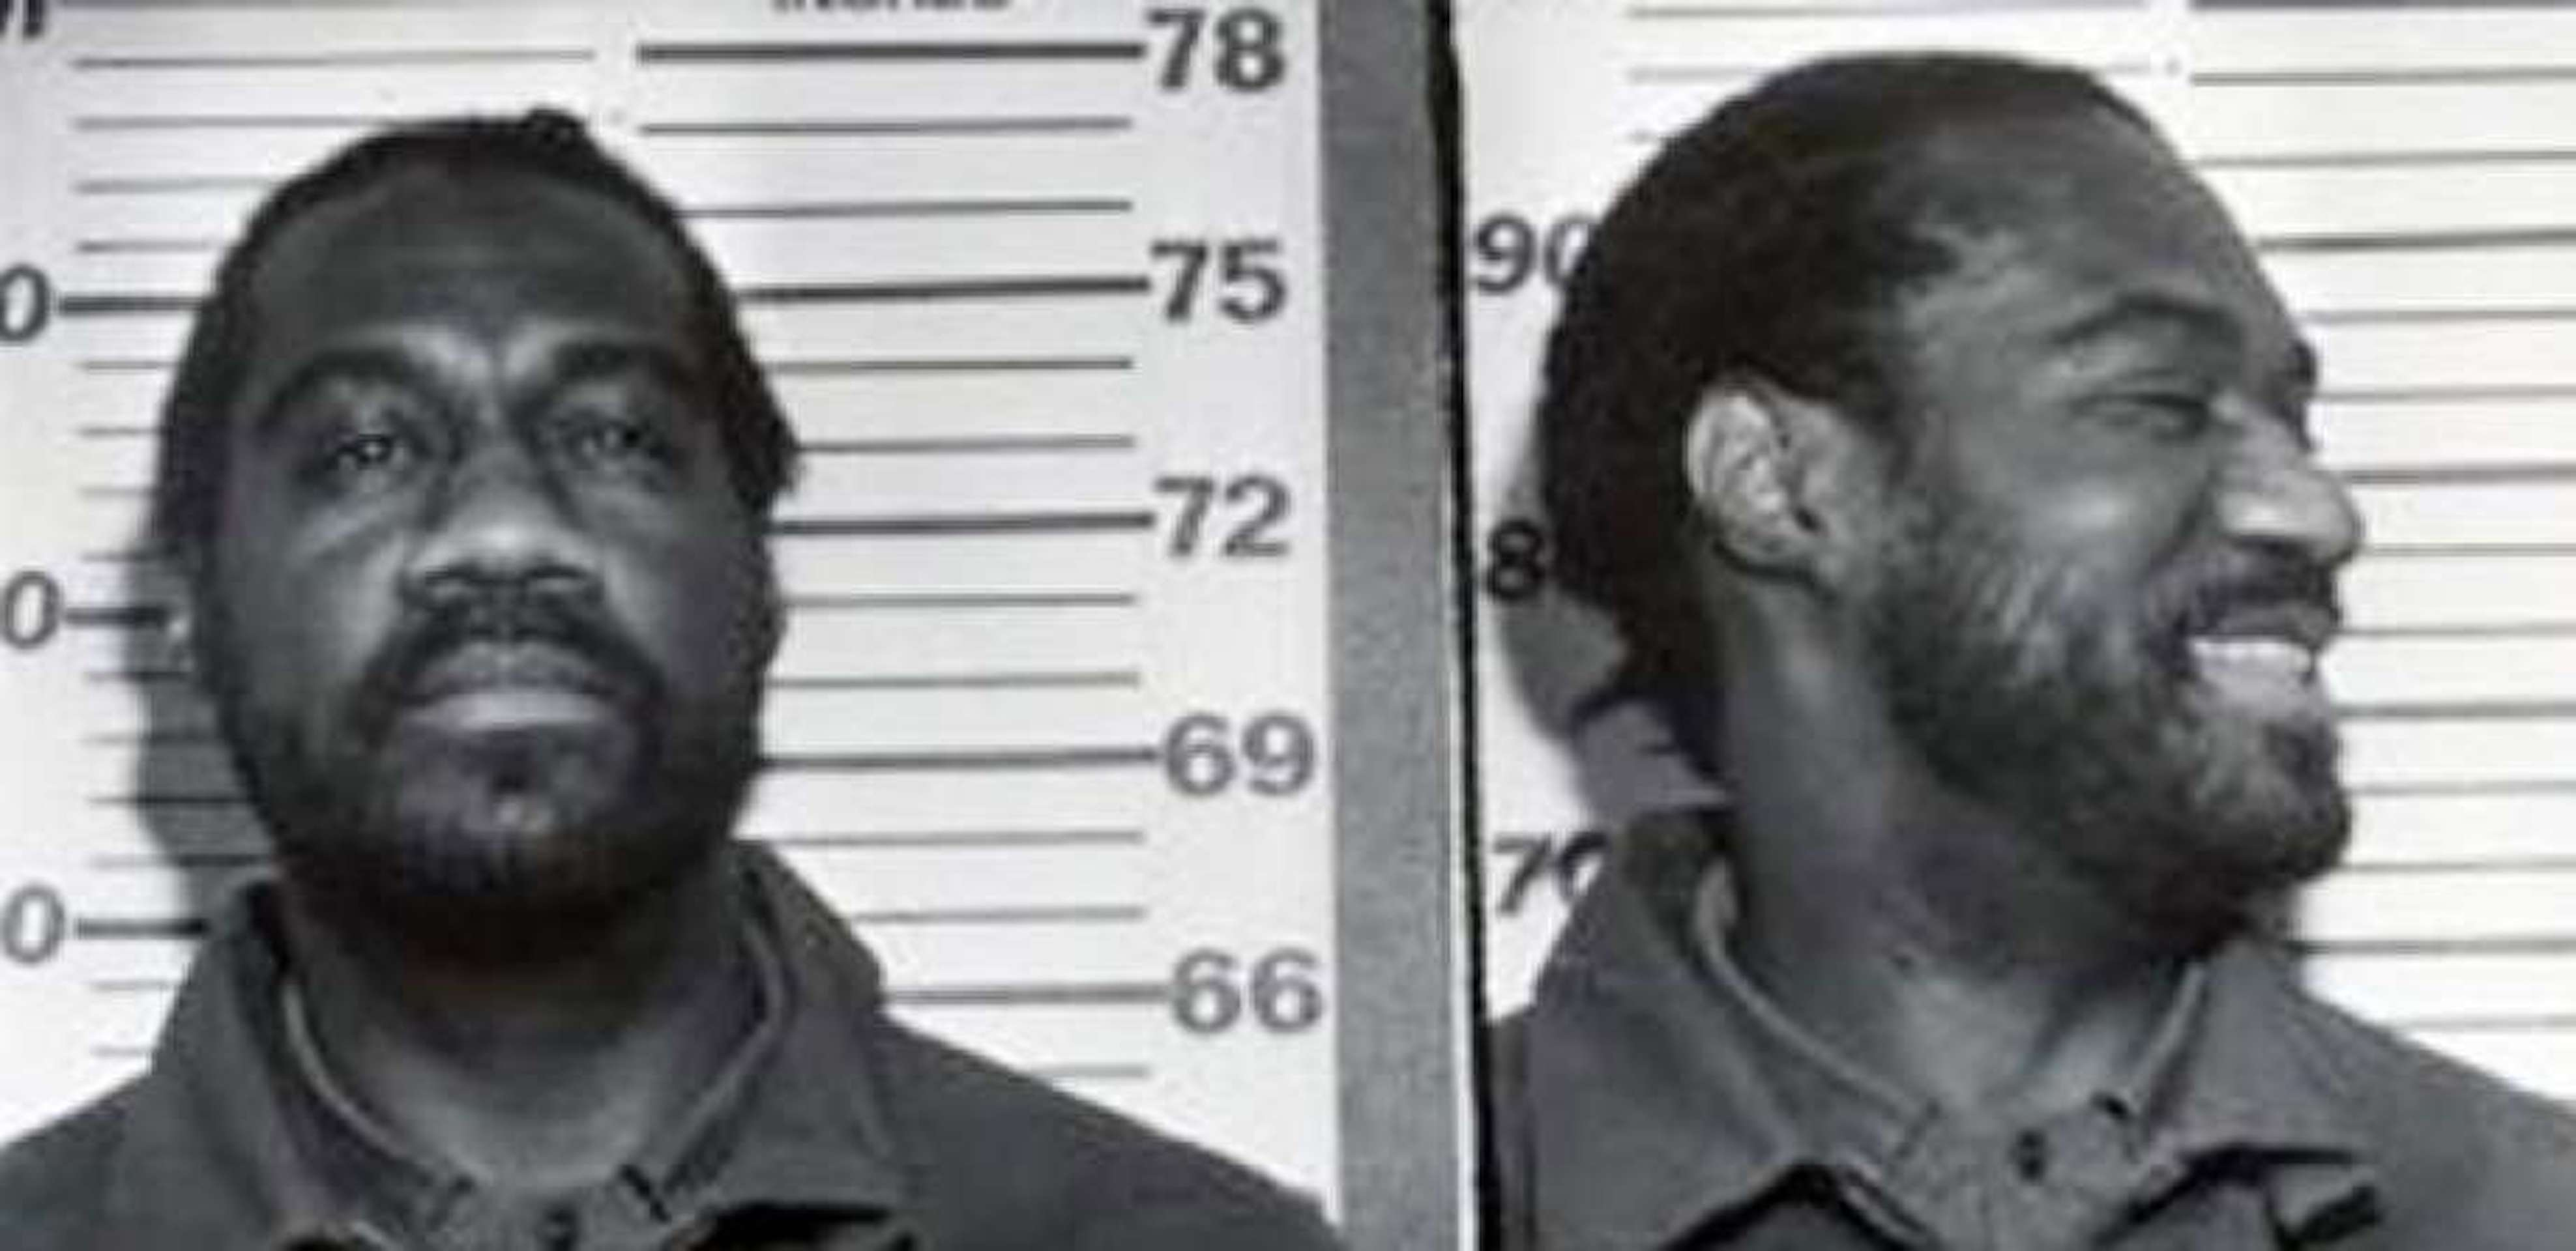 An Ex-Black Panther Convicted of Killing 2 Cops Is Getting Paroled After Almost 50 Years - vice